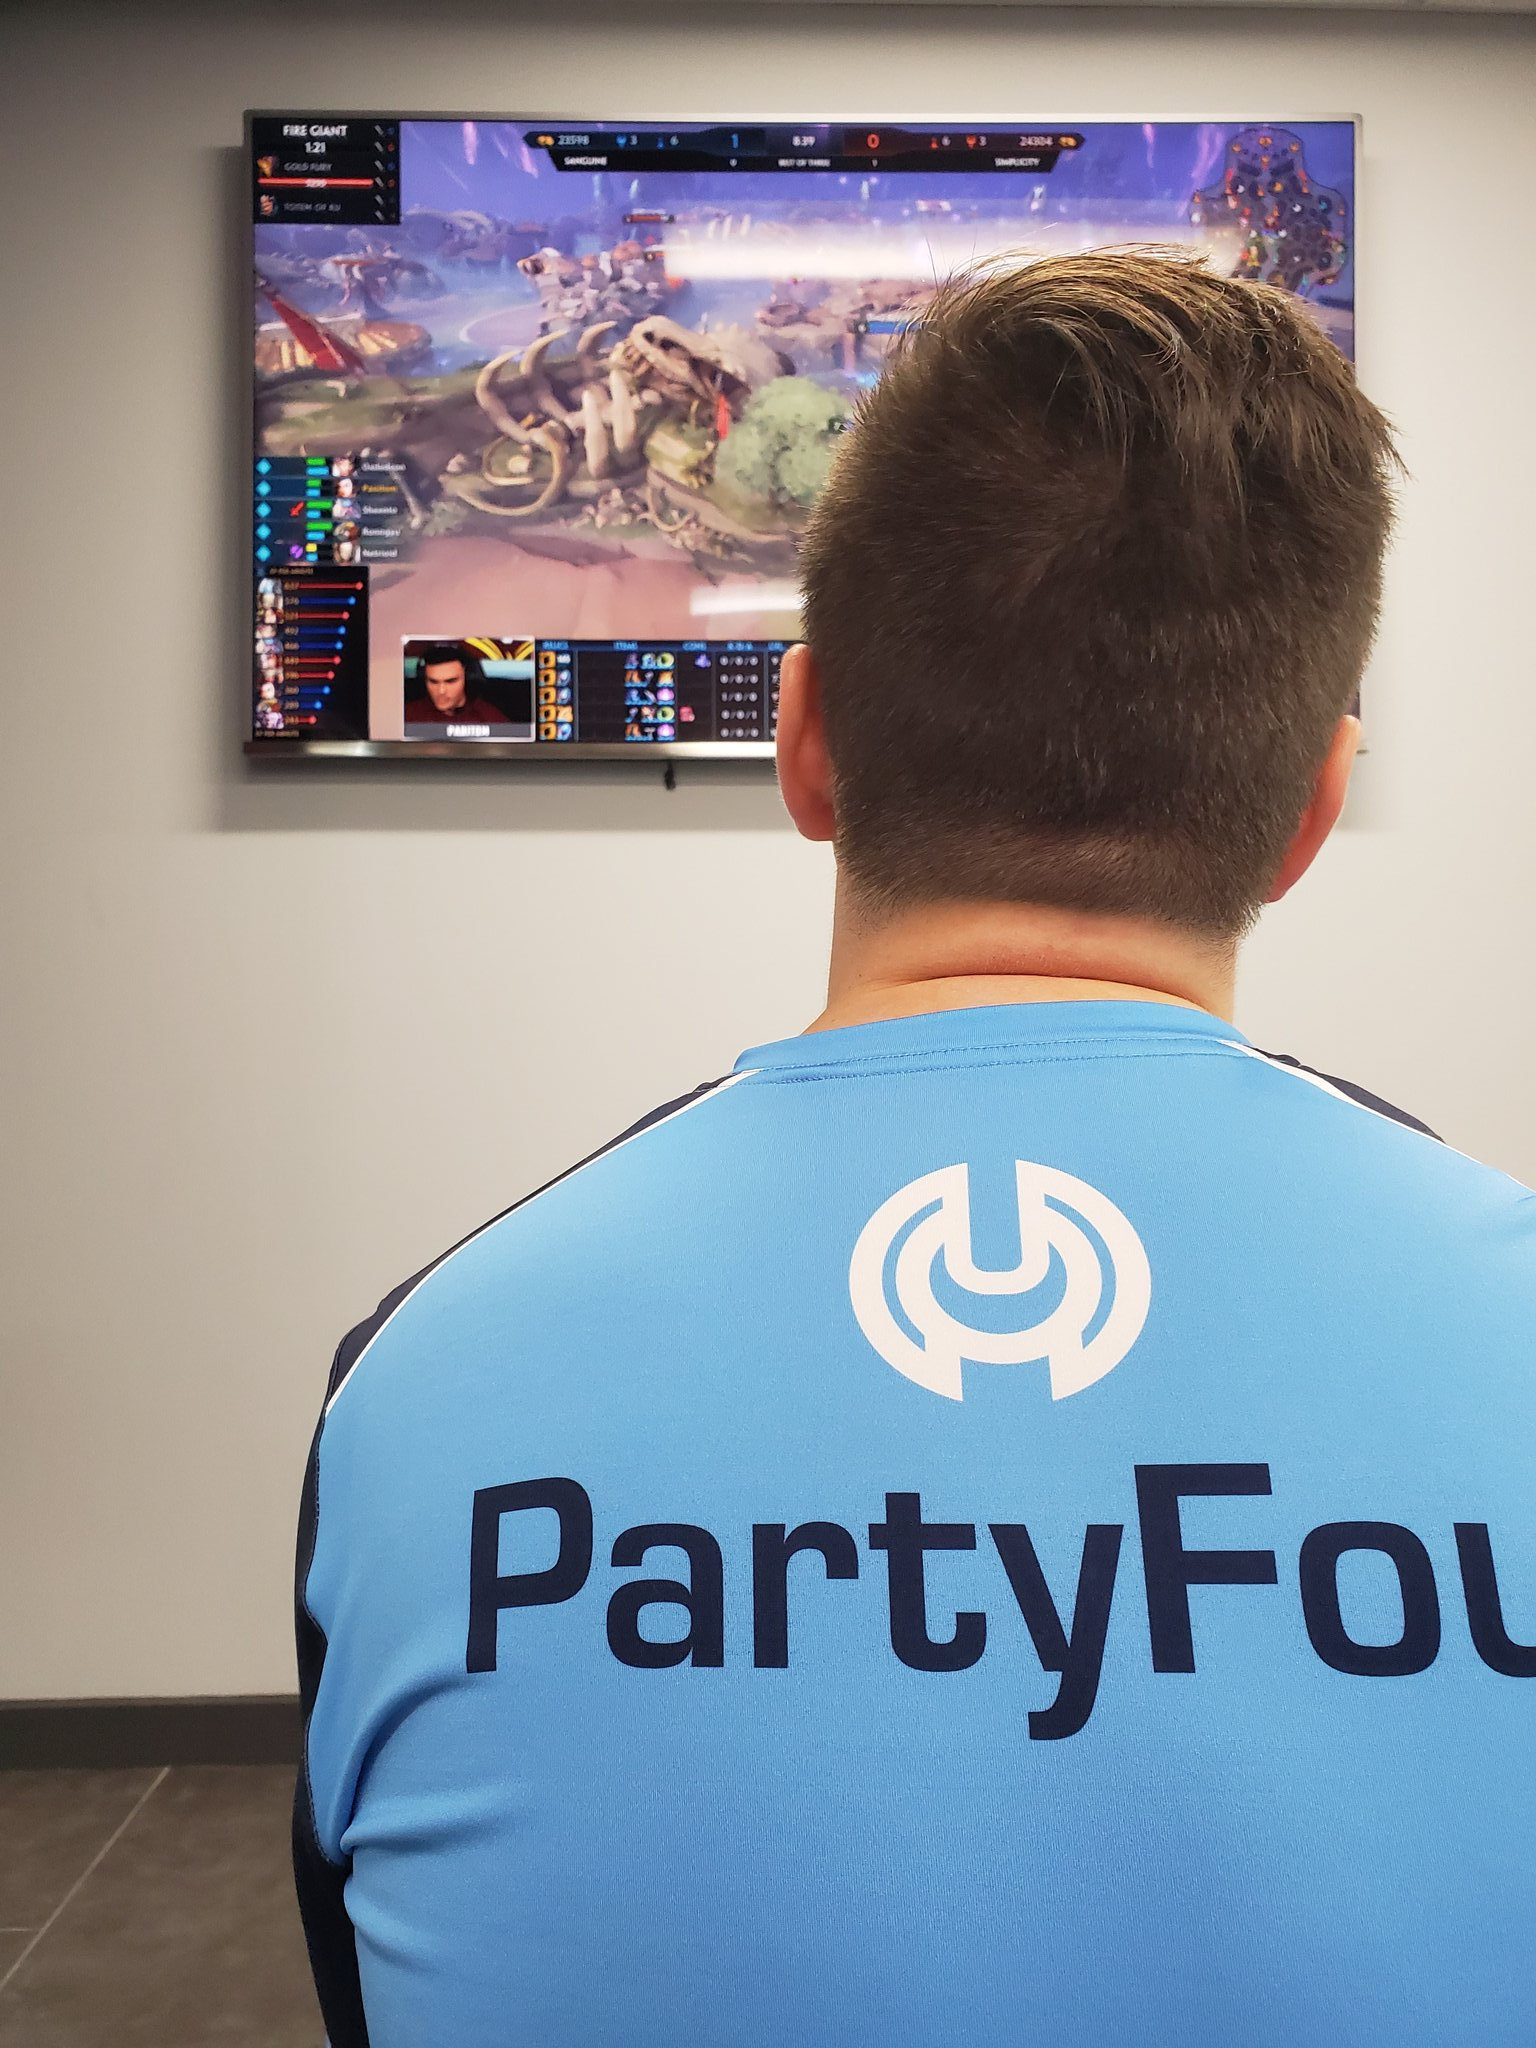 """Congratulations to PartyFoul  on his new role as the """"Director of esports"""" at Simplicity"""